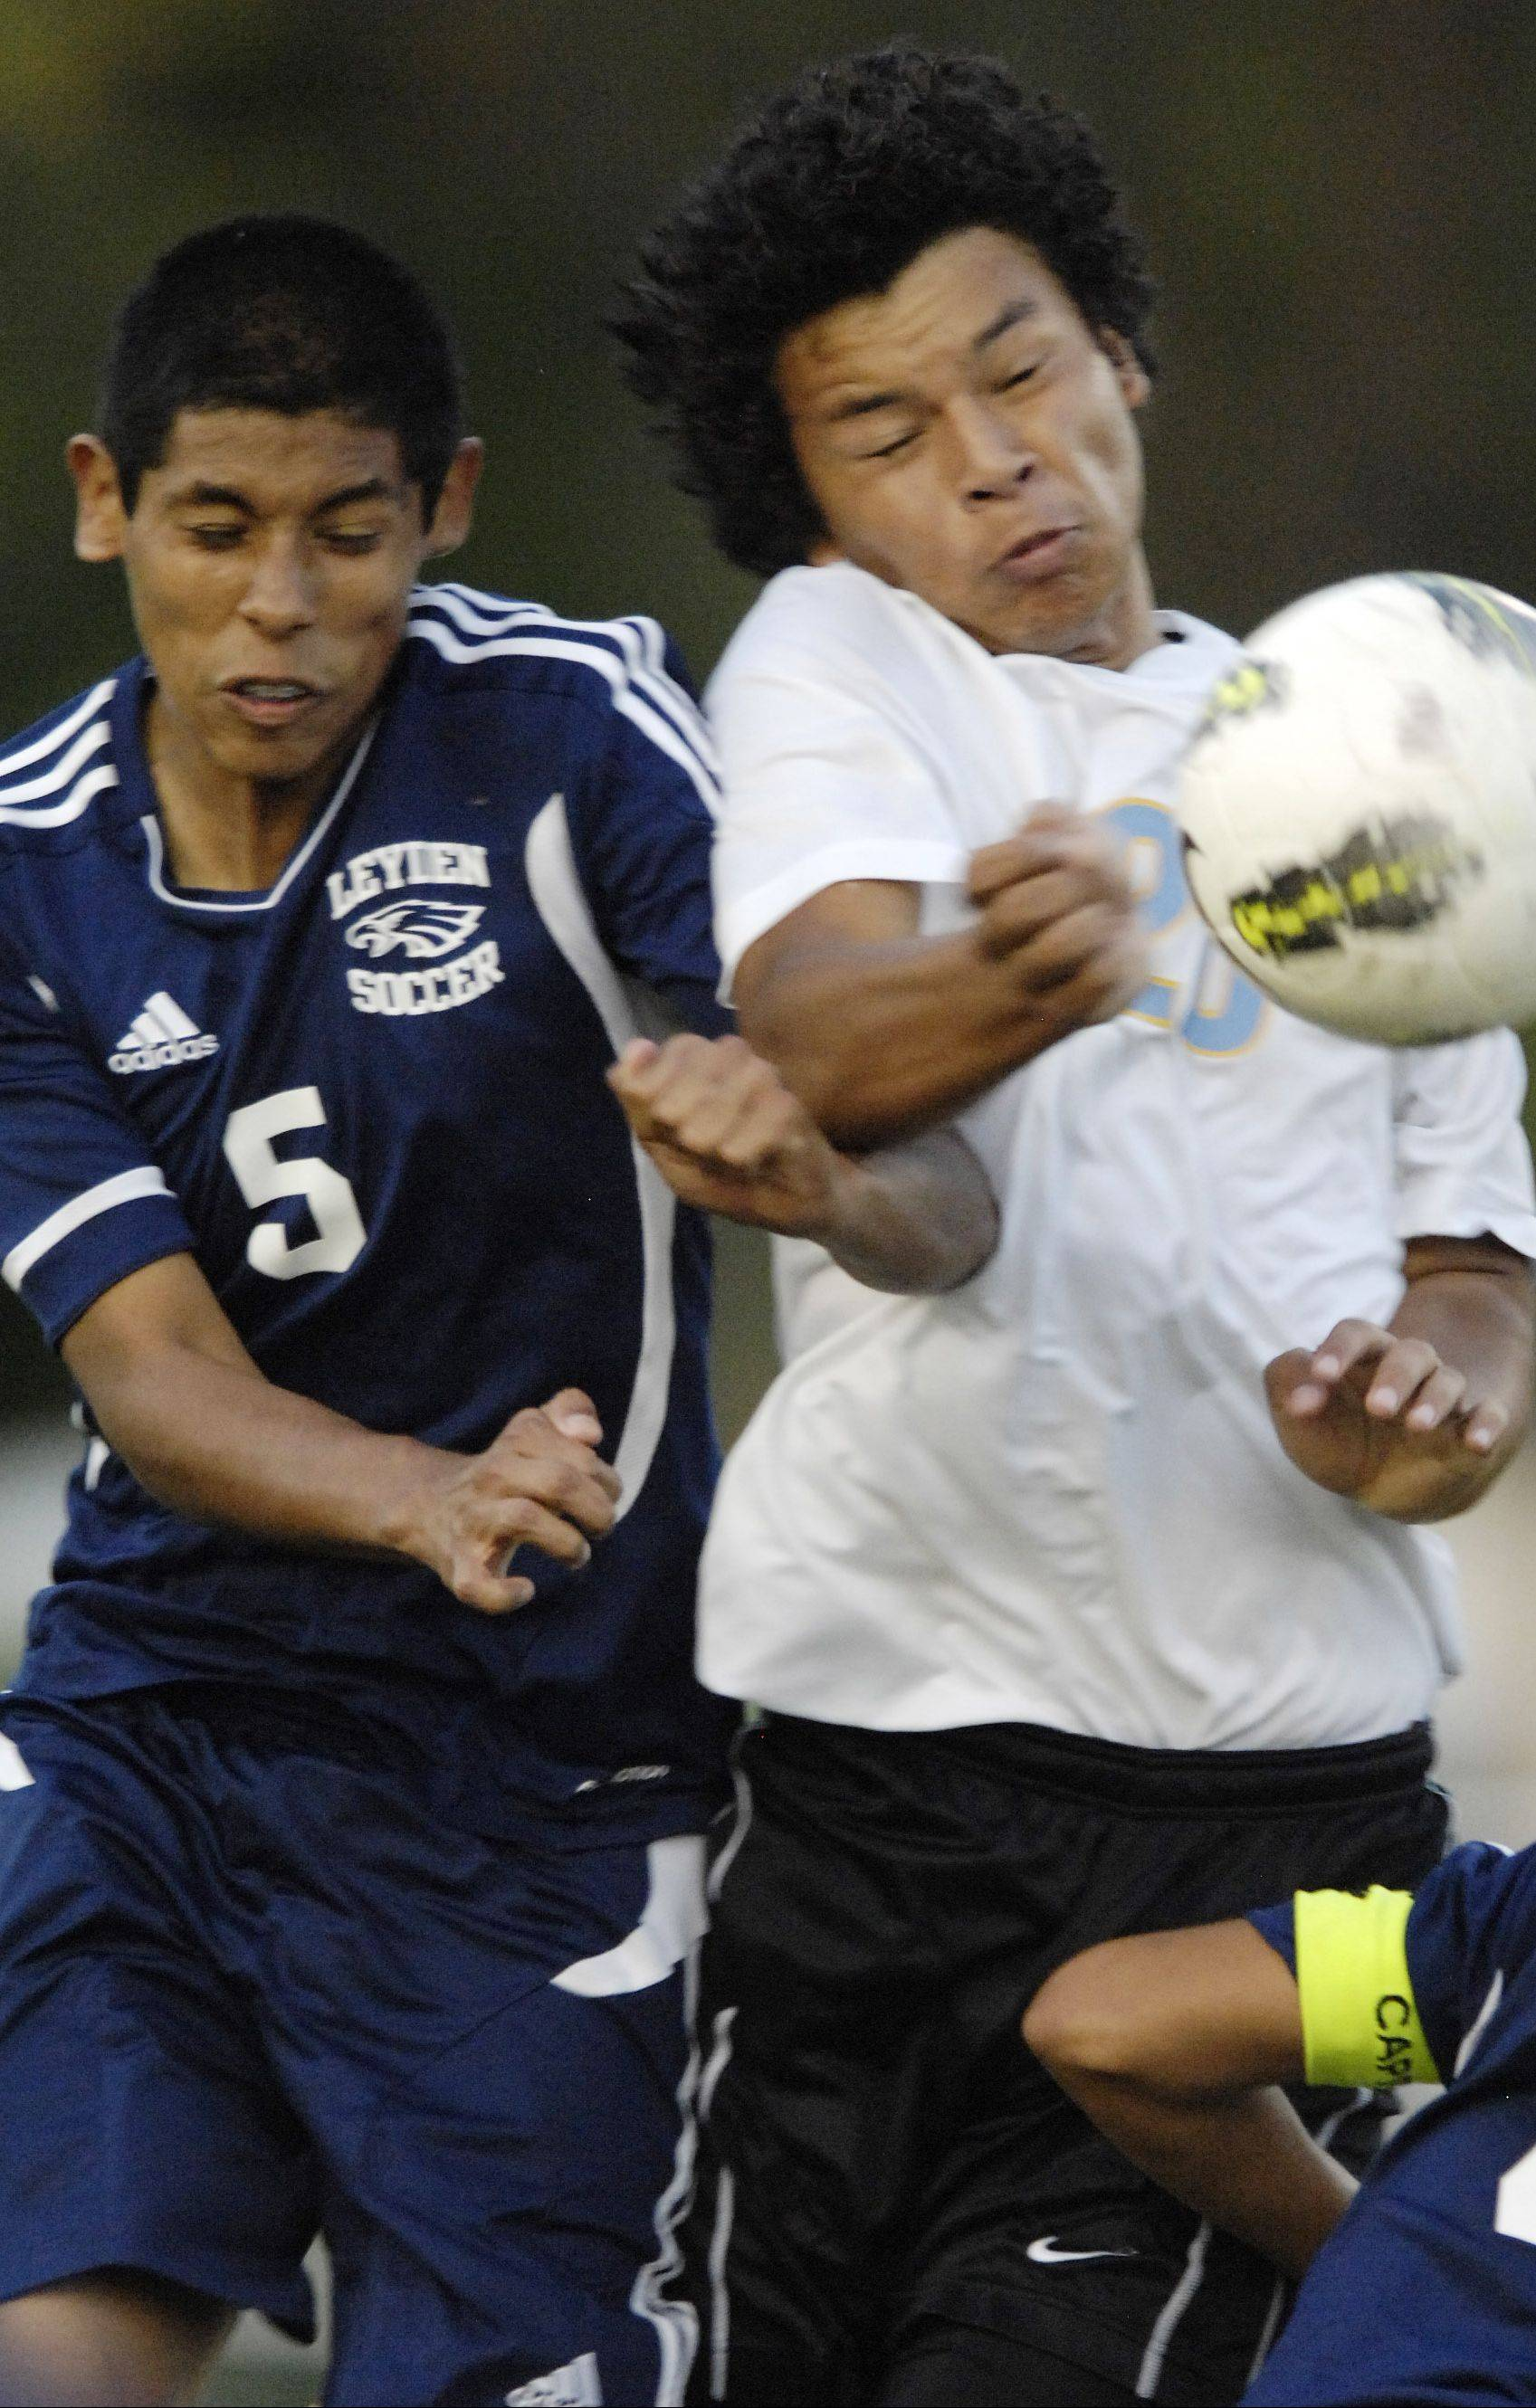 Maine West's Nelson Herrera, at right, vying for possession with Leyden's Moises Merlos last season, is a two-time all-area team selection with 56 goals entering his senior season.